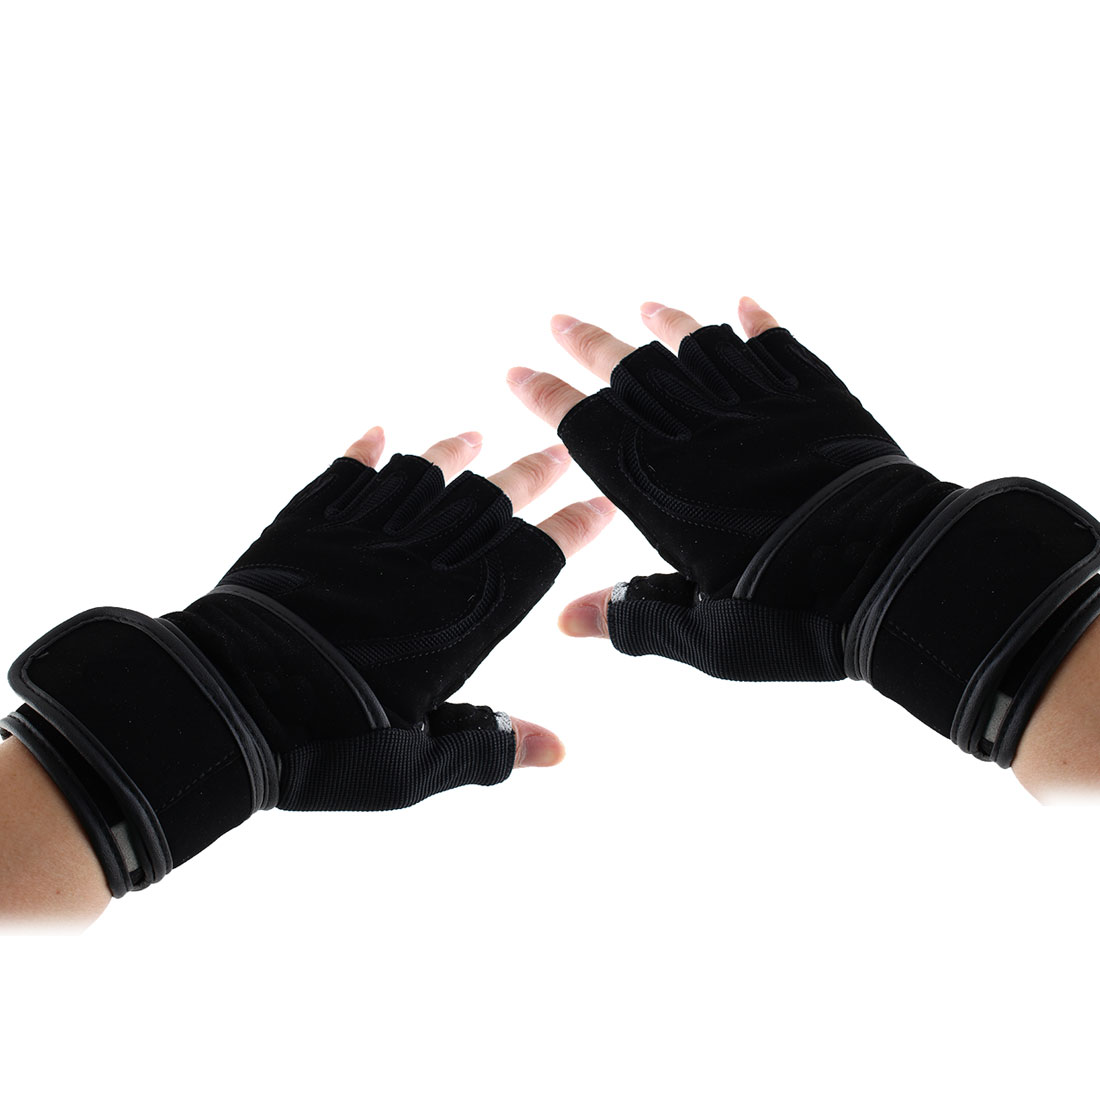 Boodun Authorized Men Sports Weight Lifting Cycling Gym Workout Fitness Anti Slip Half Finger Gloves Size M Pair